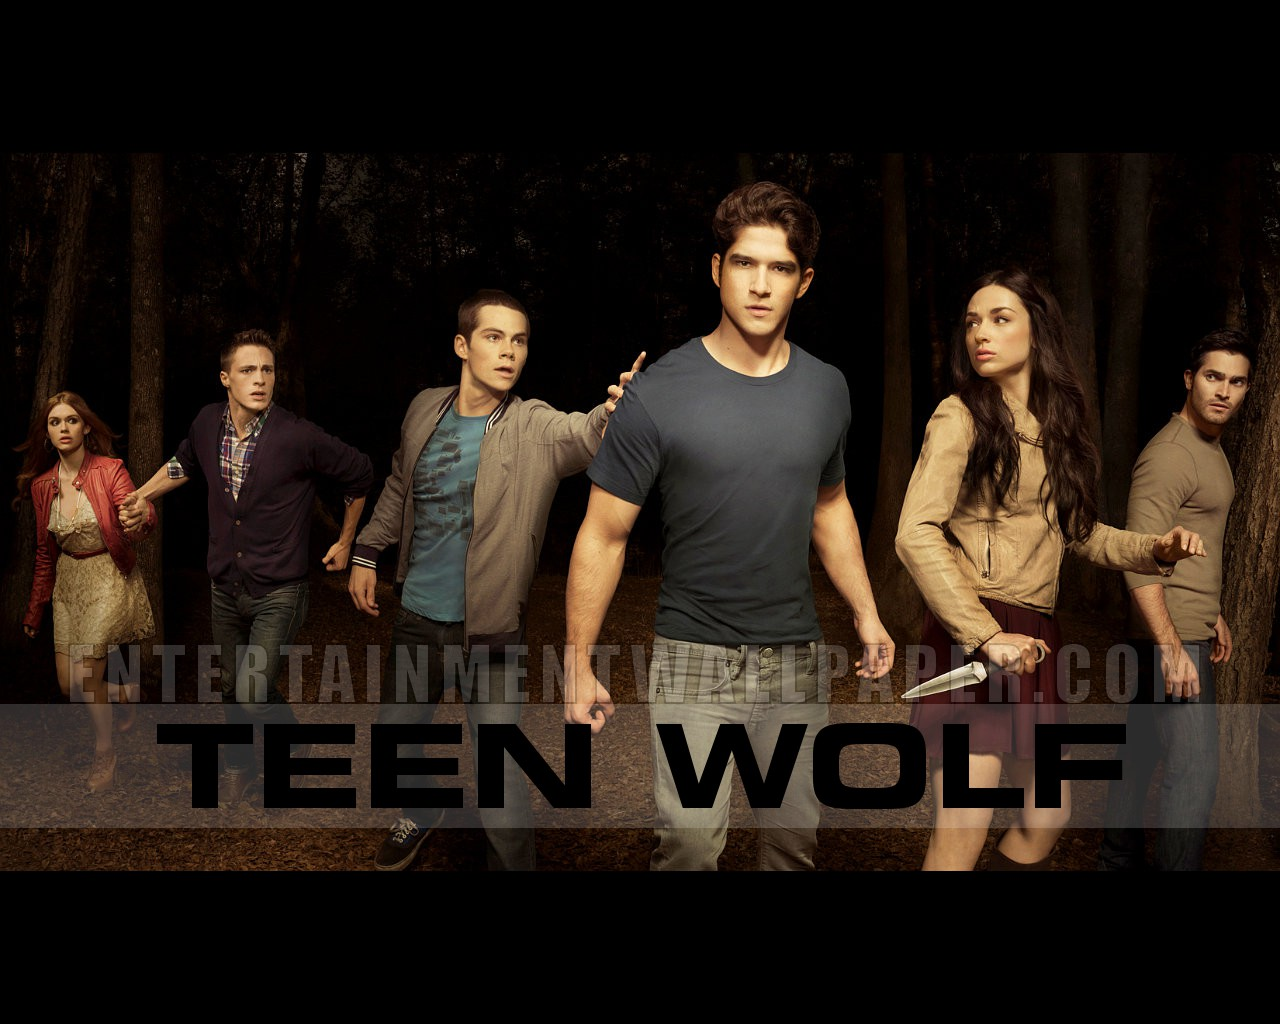 Teen Wolf Wallpaper